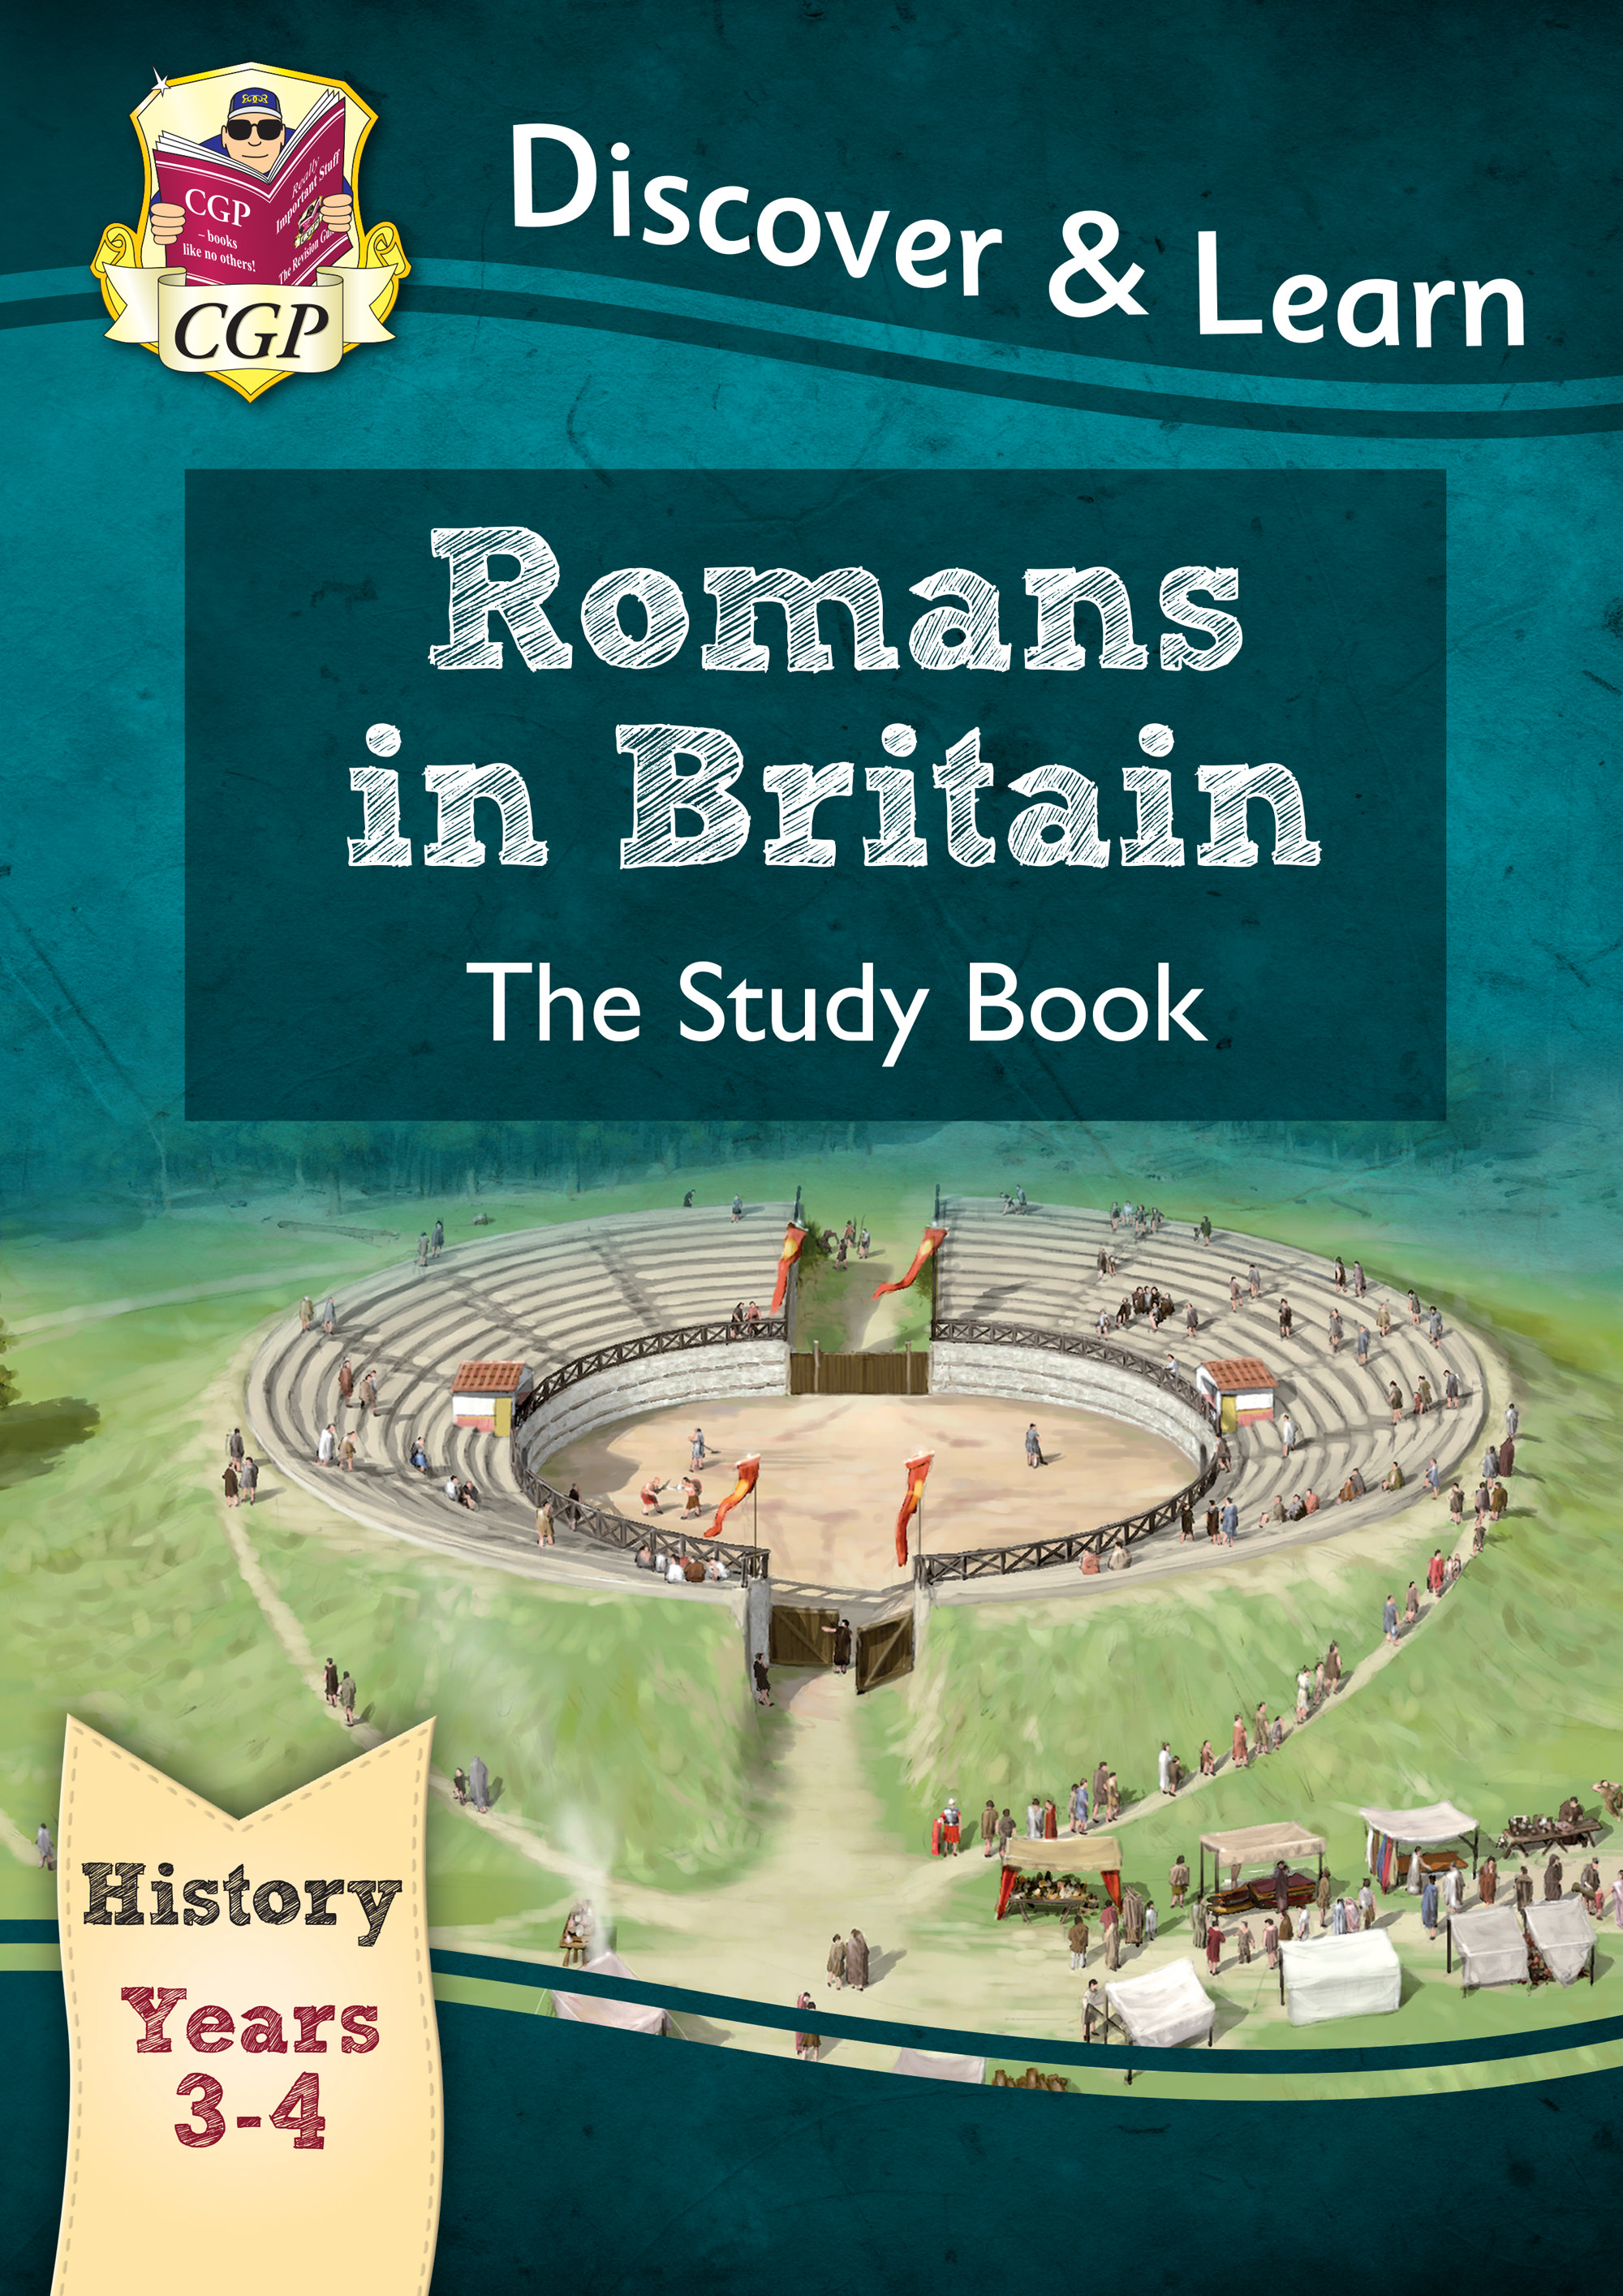 HRR21 - KS2 Discover & Learn: History - Romans in Britain Study Book, Year 3 & 4